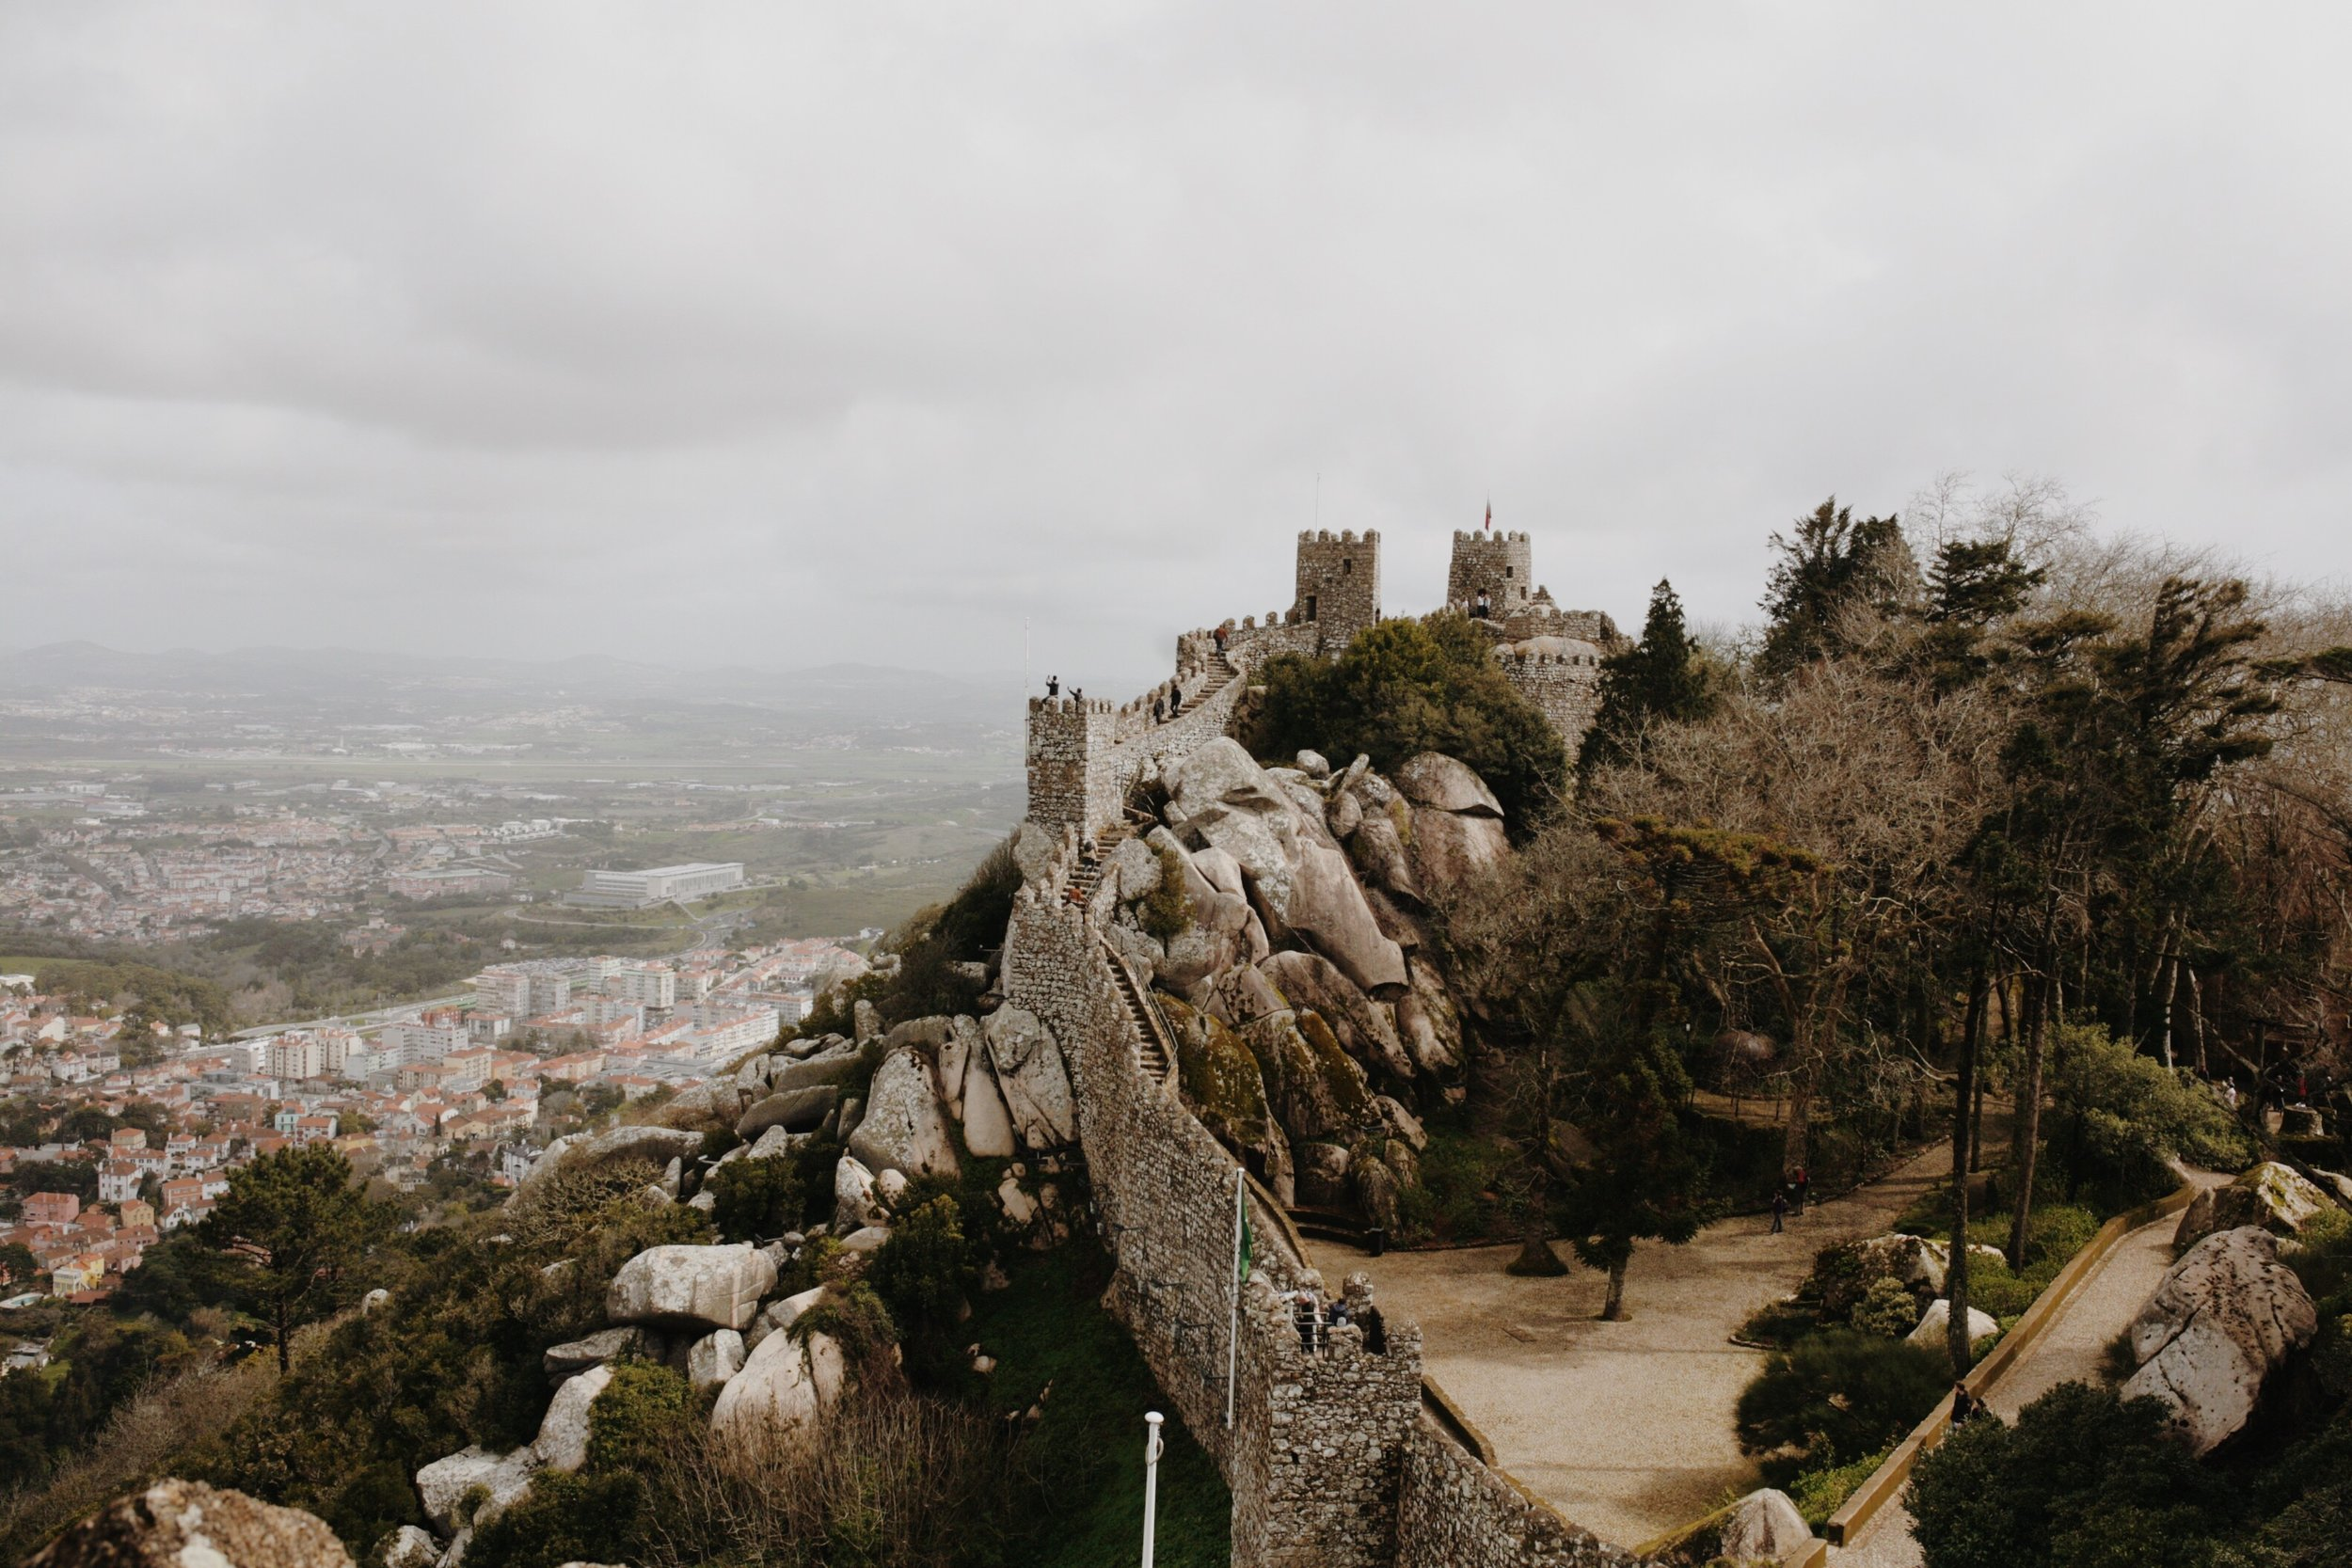 View from the walls of castelo dos mouros in sintra